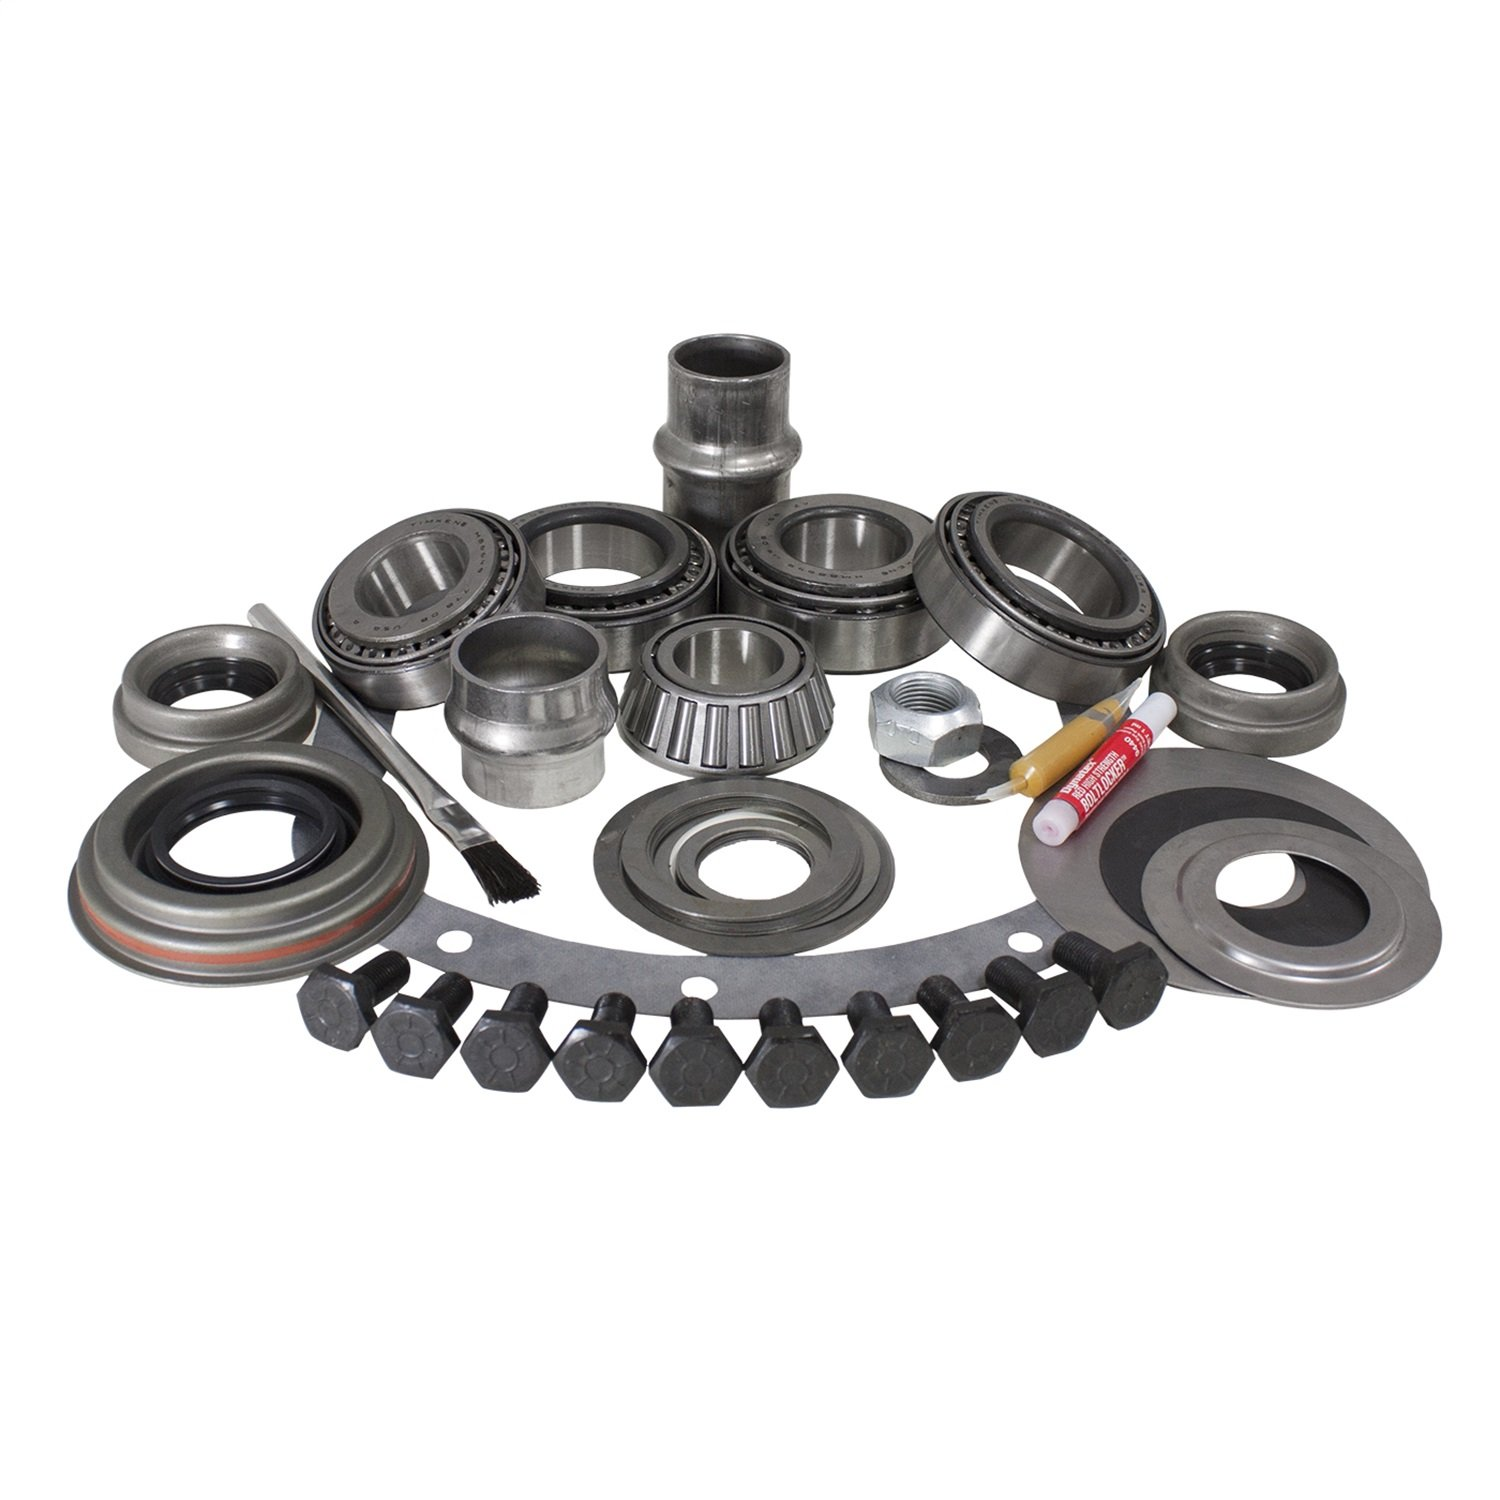 Yukon (YK D36-VET) Master Overhaul Kit for Dana 36 ICA Differential